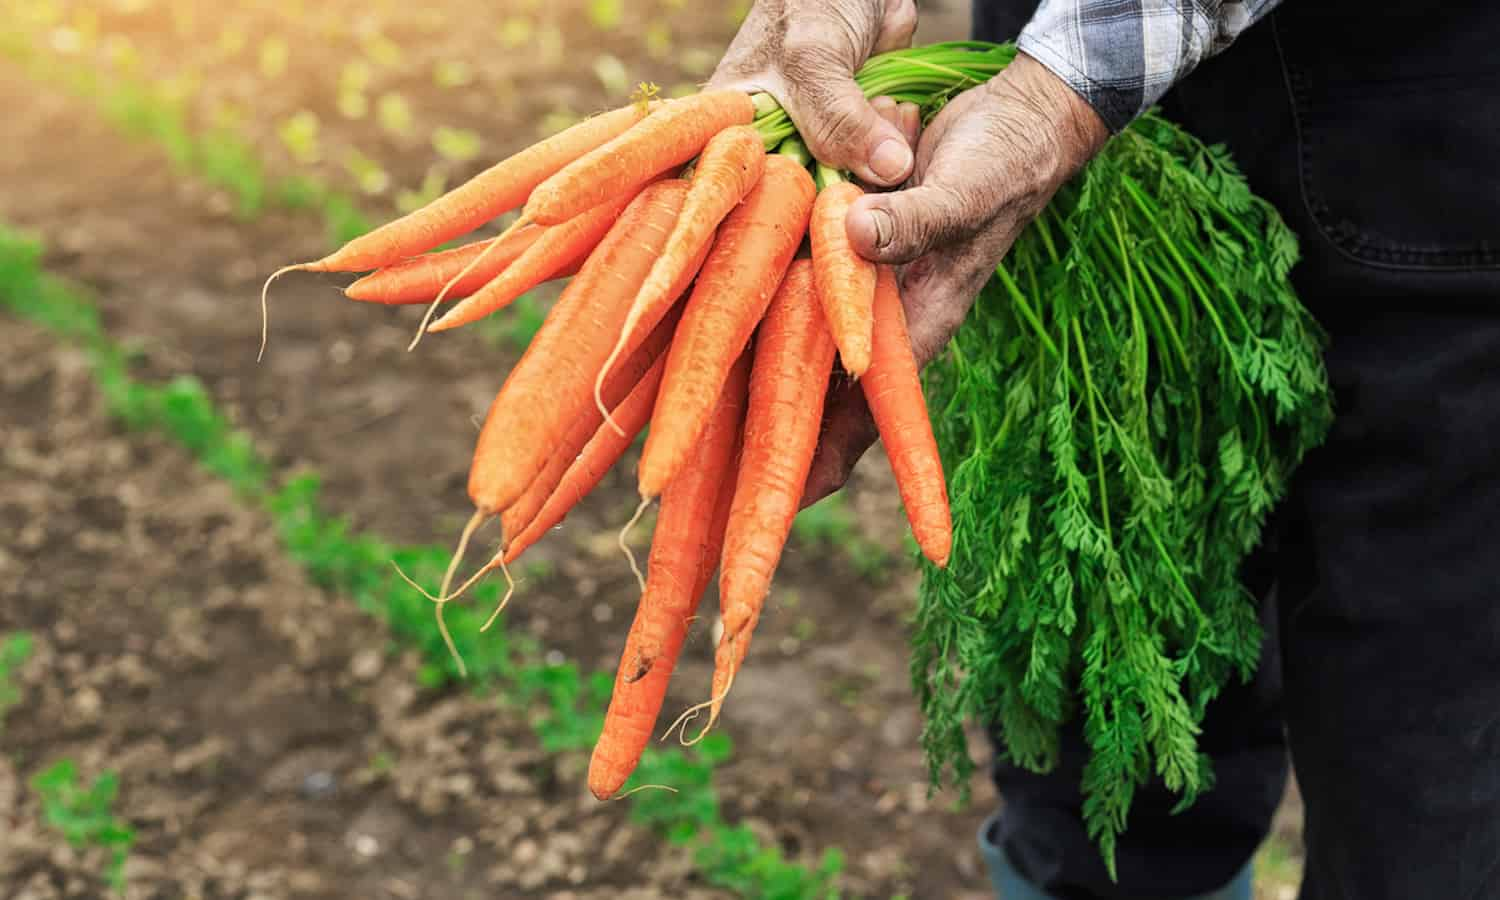 The European Parliament's Independent Research Service released an encouraging report about the health benefits of eating organic